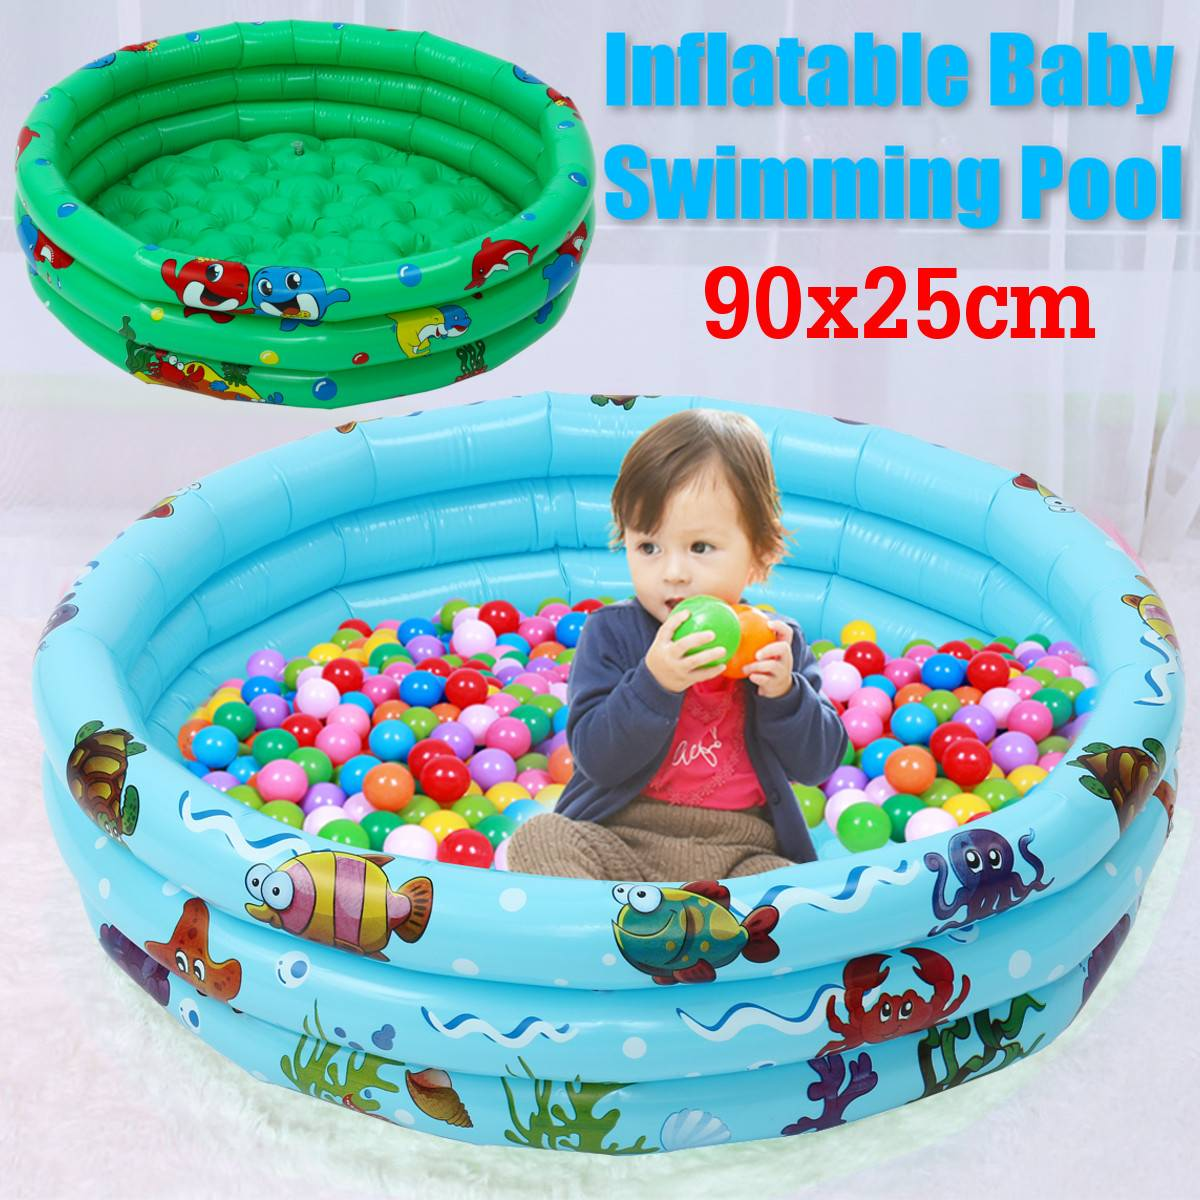 90x25cm Inflatable Baby Swimming Pool Piscina Portable Outdoor Children Basin Bathtub Kids Pool Baby Swimming Pool Water Tub